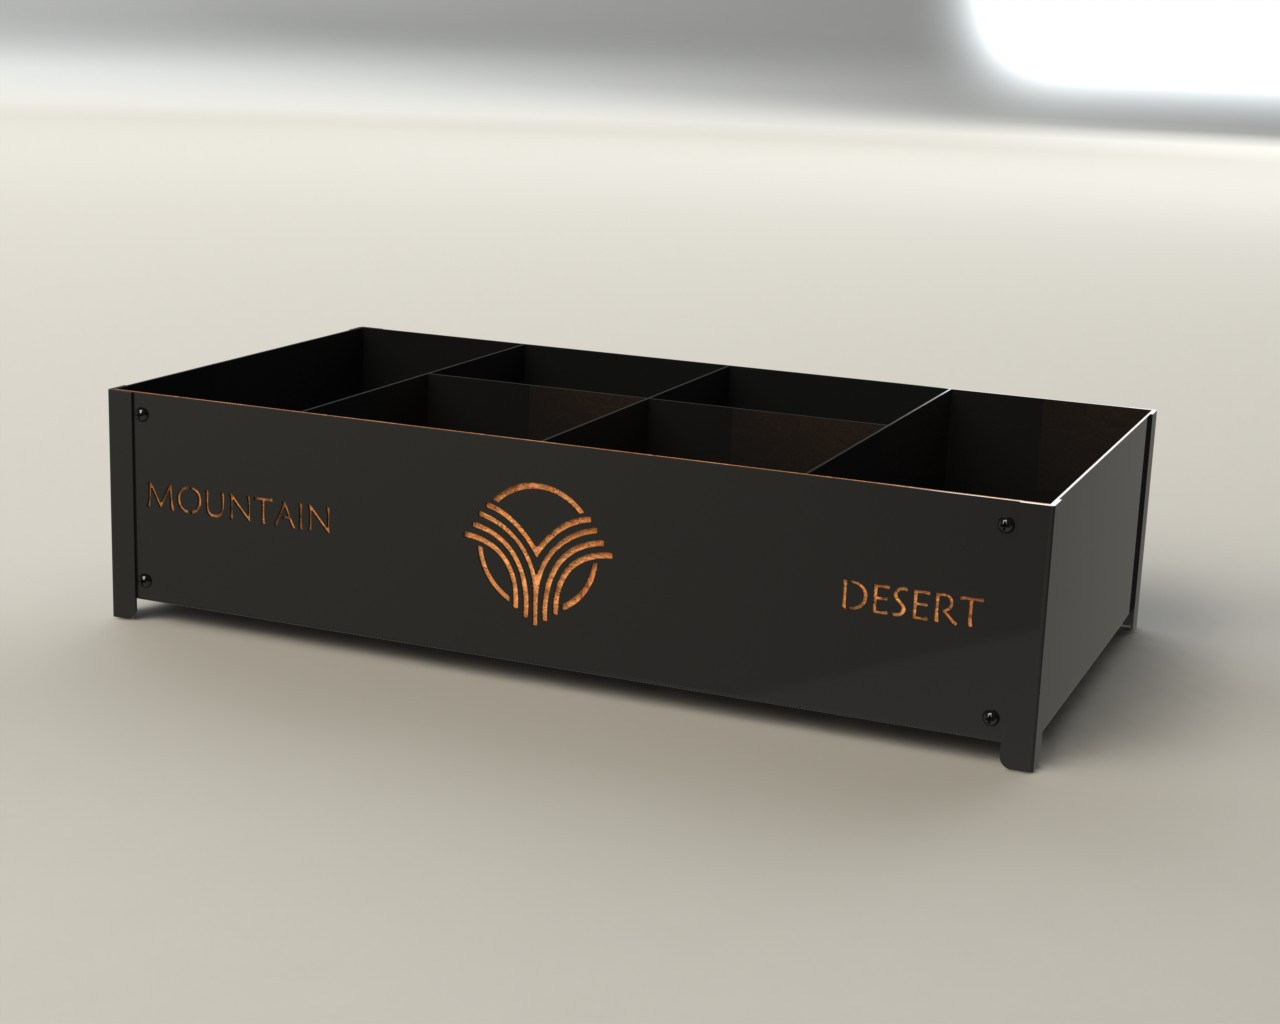 Tournament Amenities Box